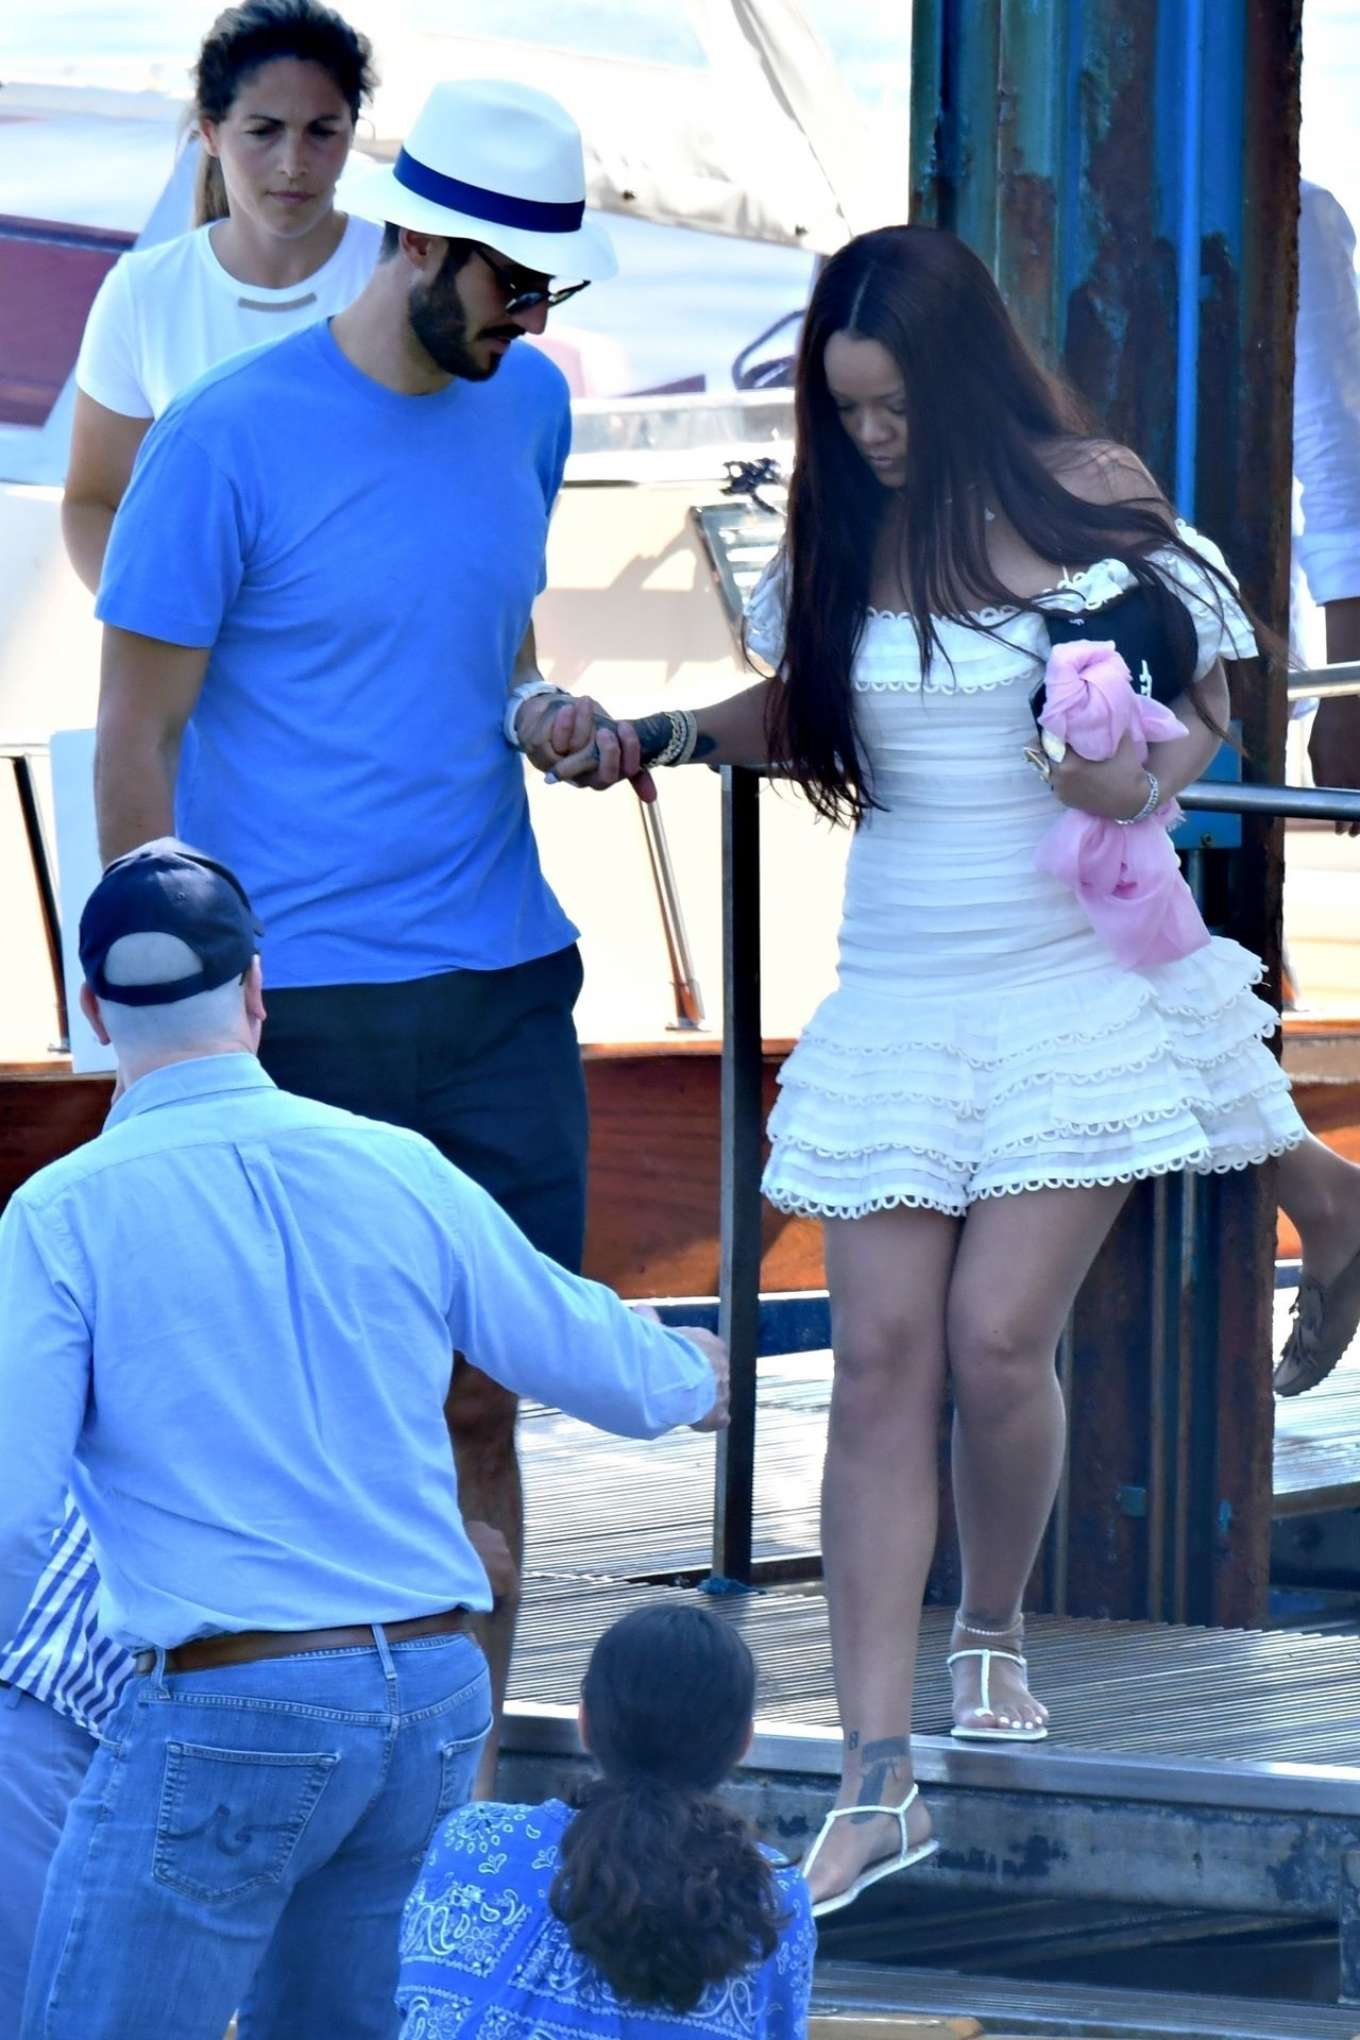 Rihanna - Spotted on a boat in Italy with her boyfriend